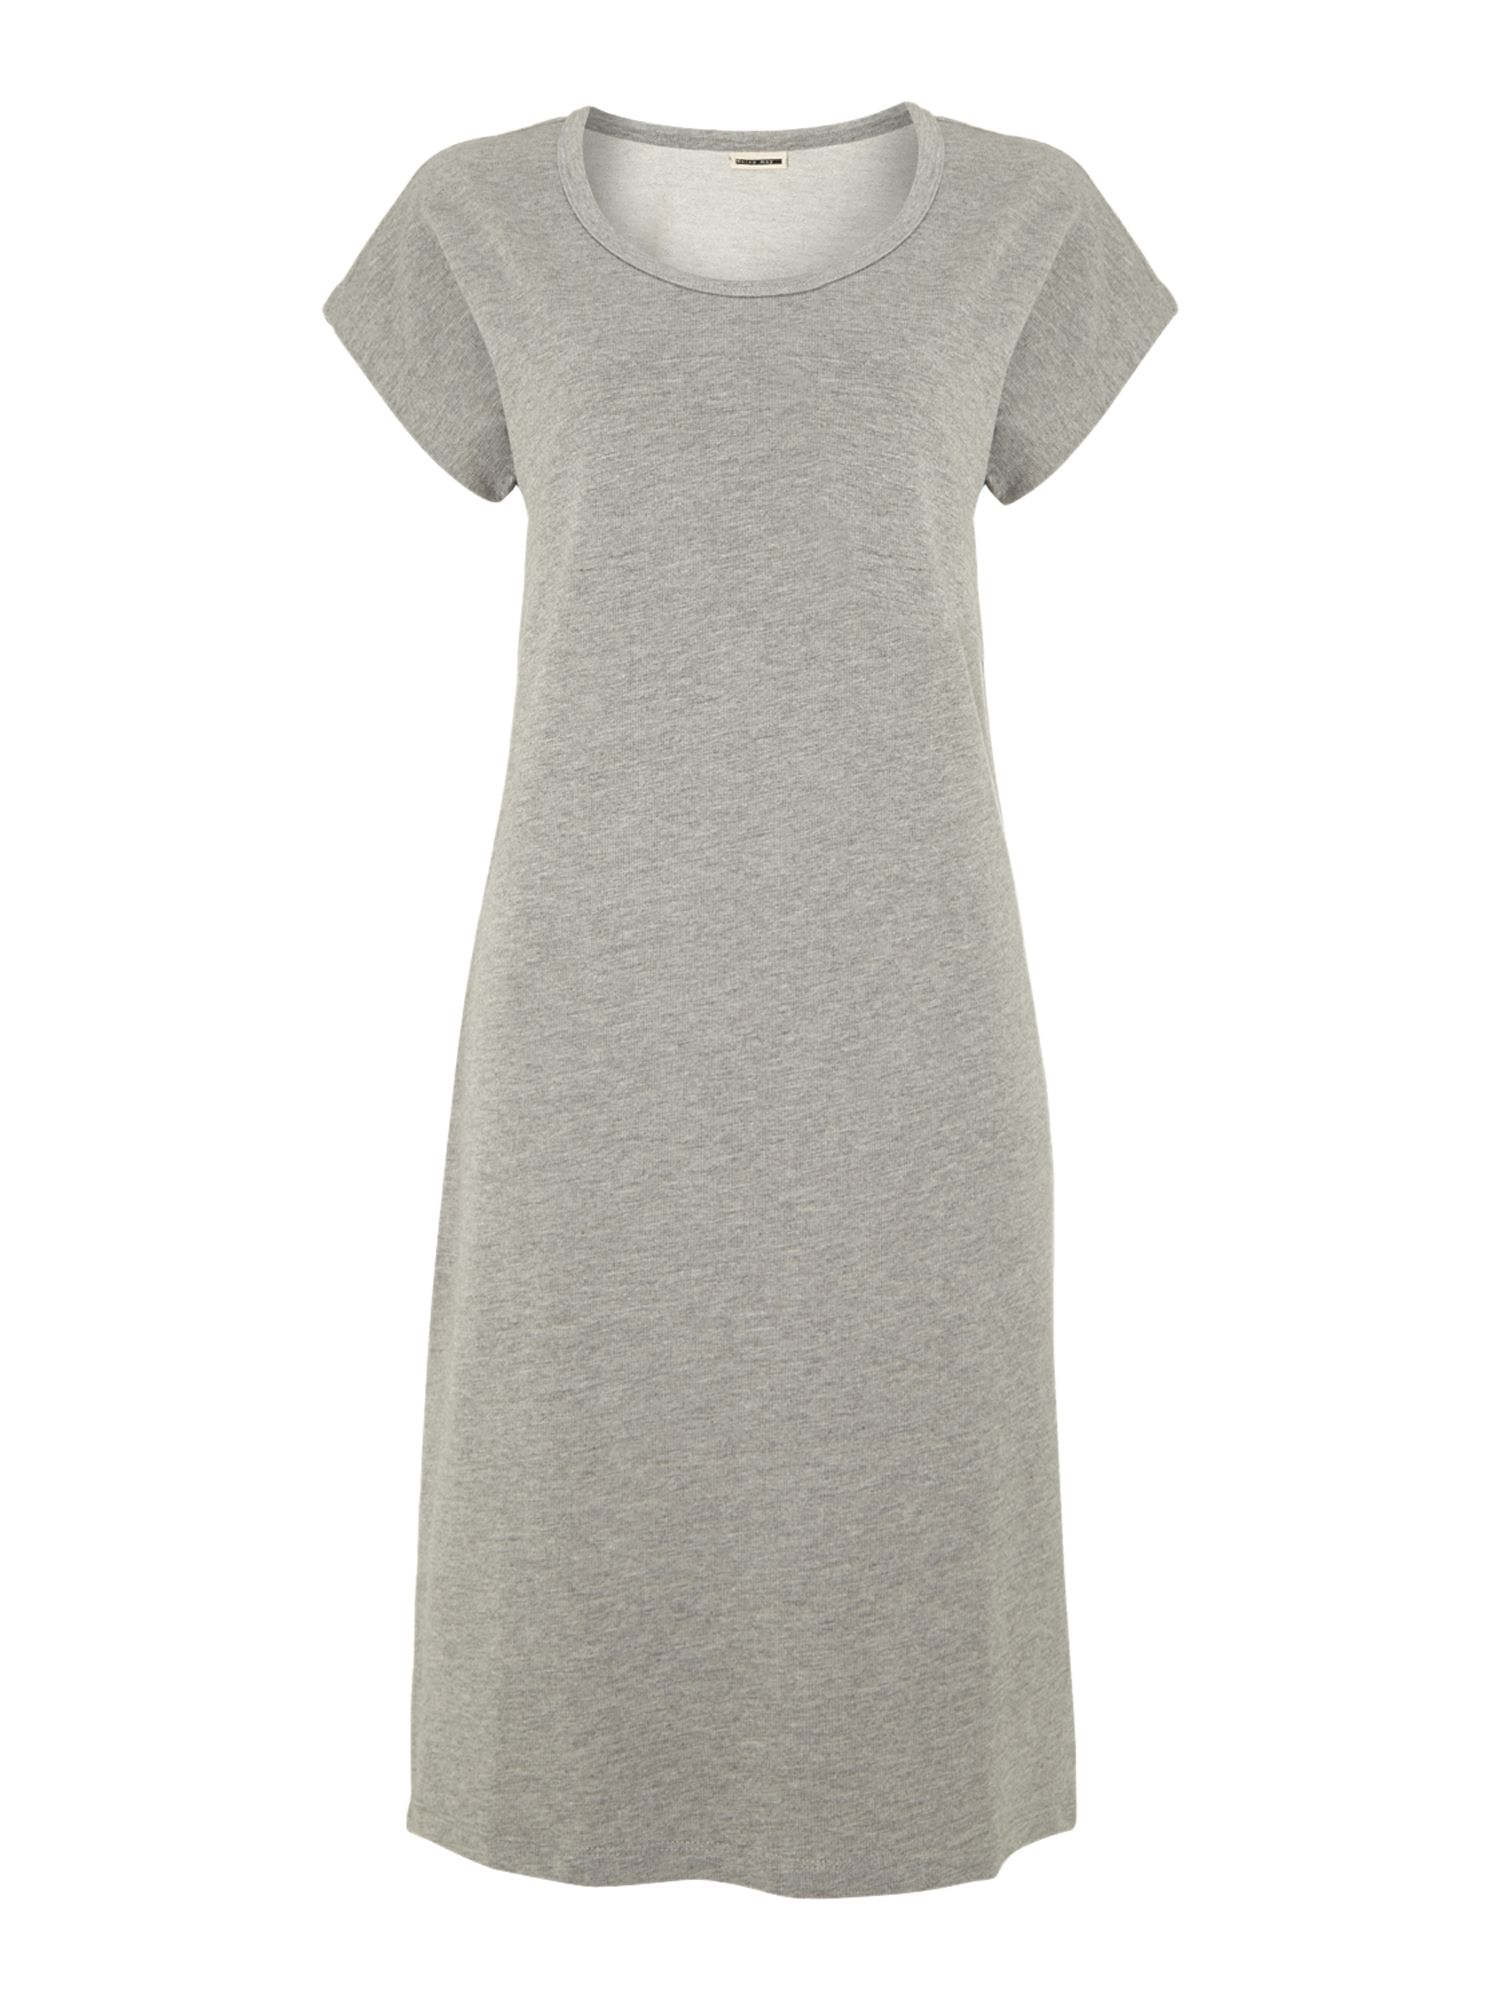 Short sleeve hi-low sweater dress